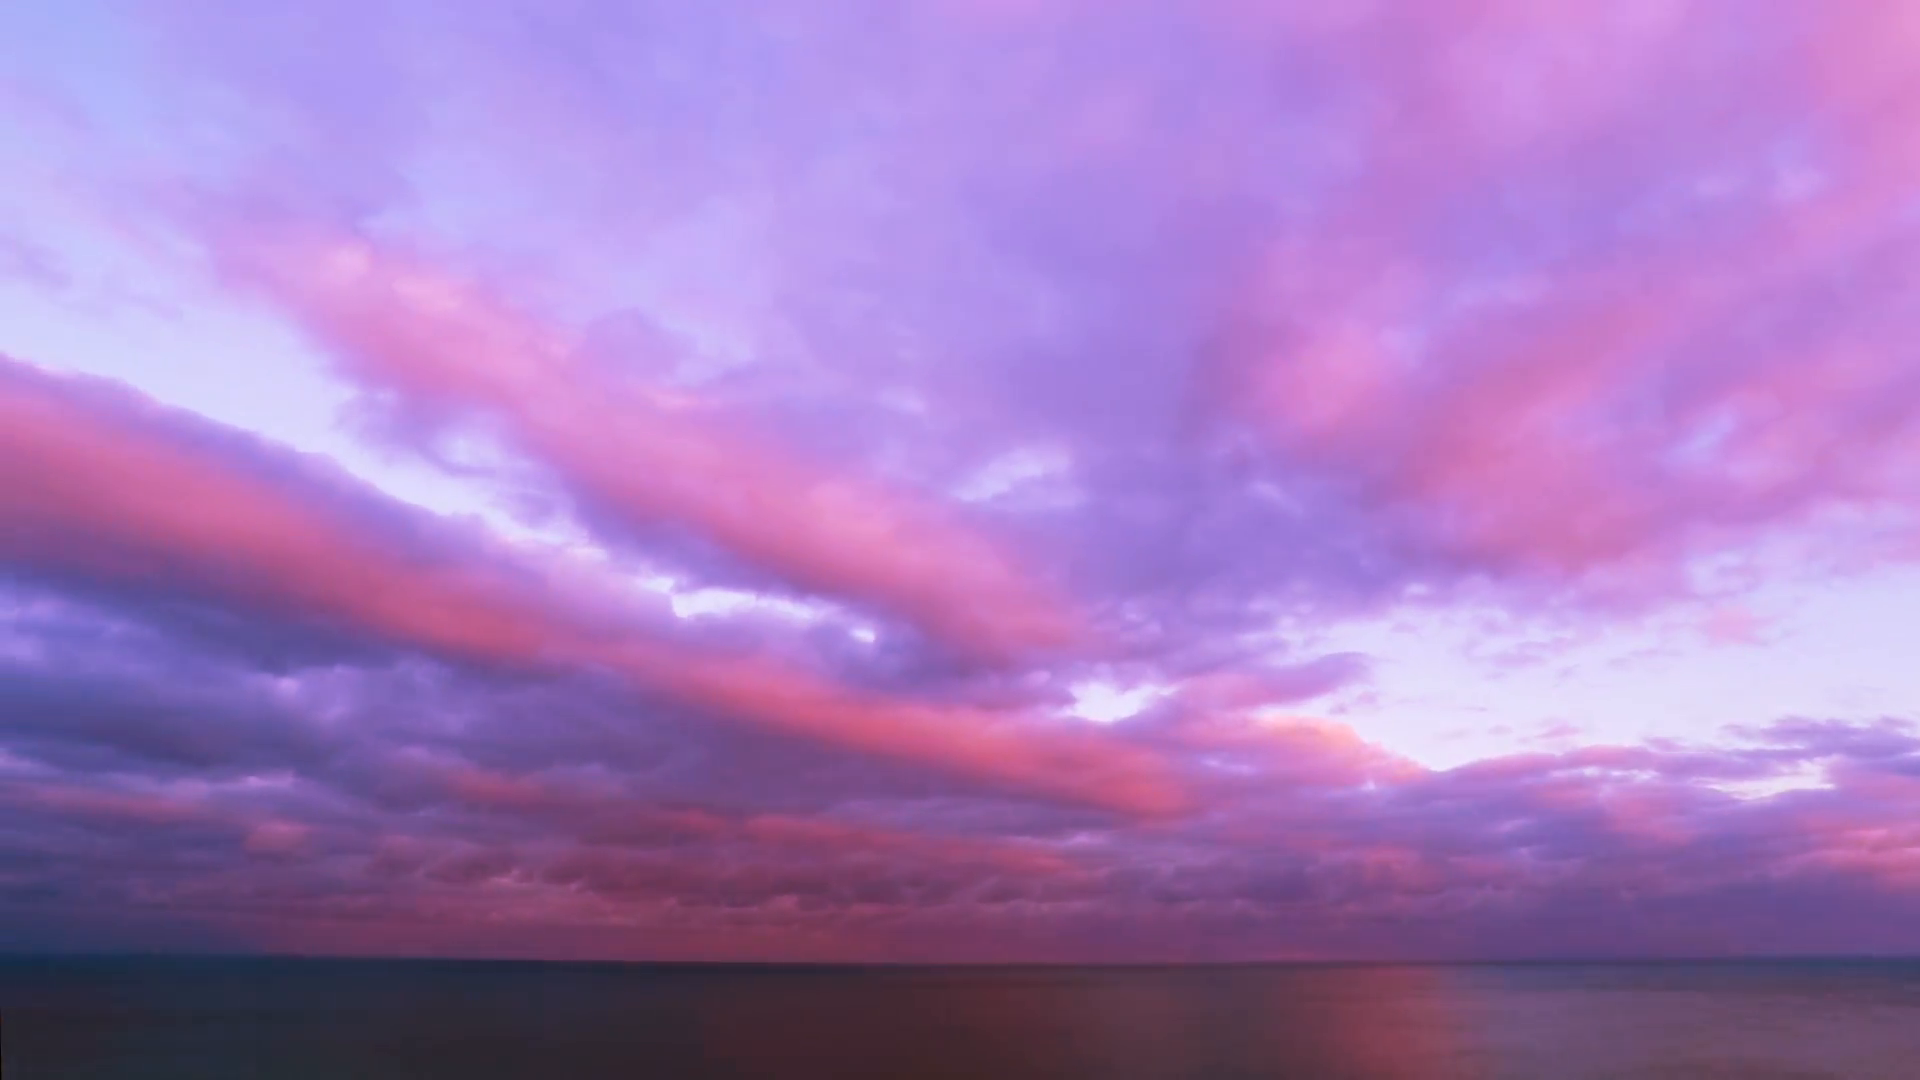 Cloudy Sunset Sky over the Sea. Timelapse. Stock Video Footage ...